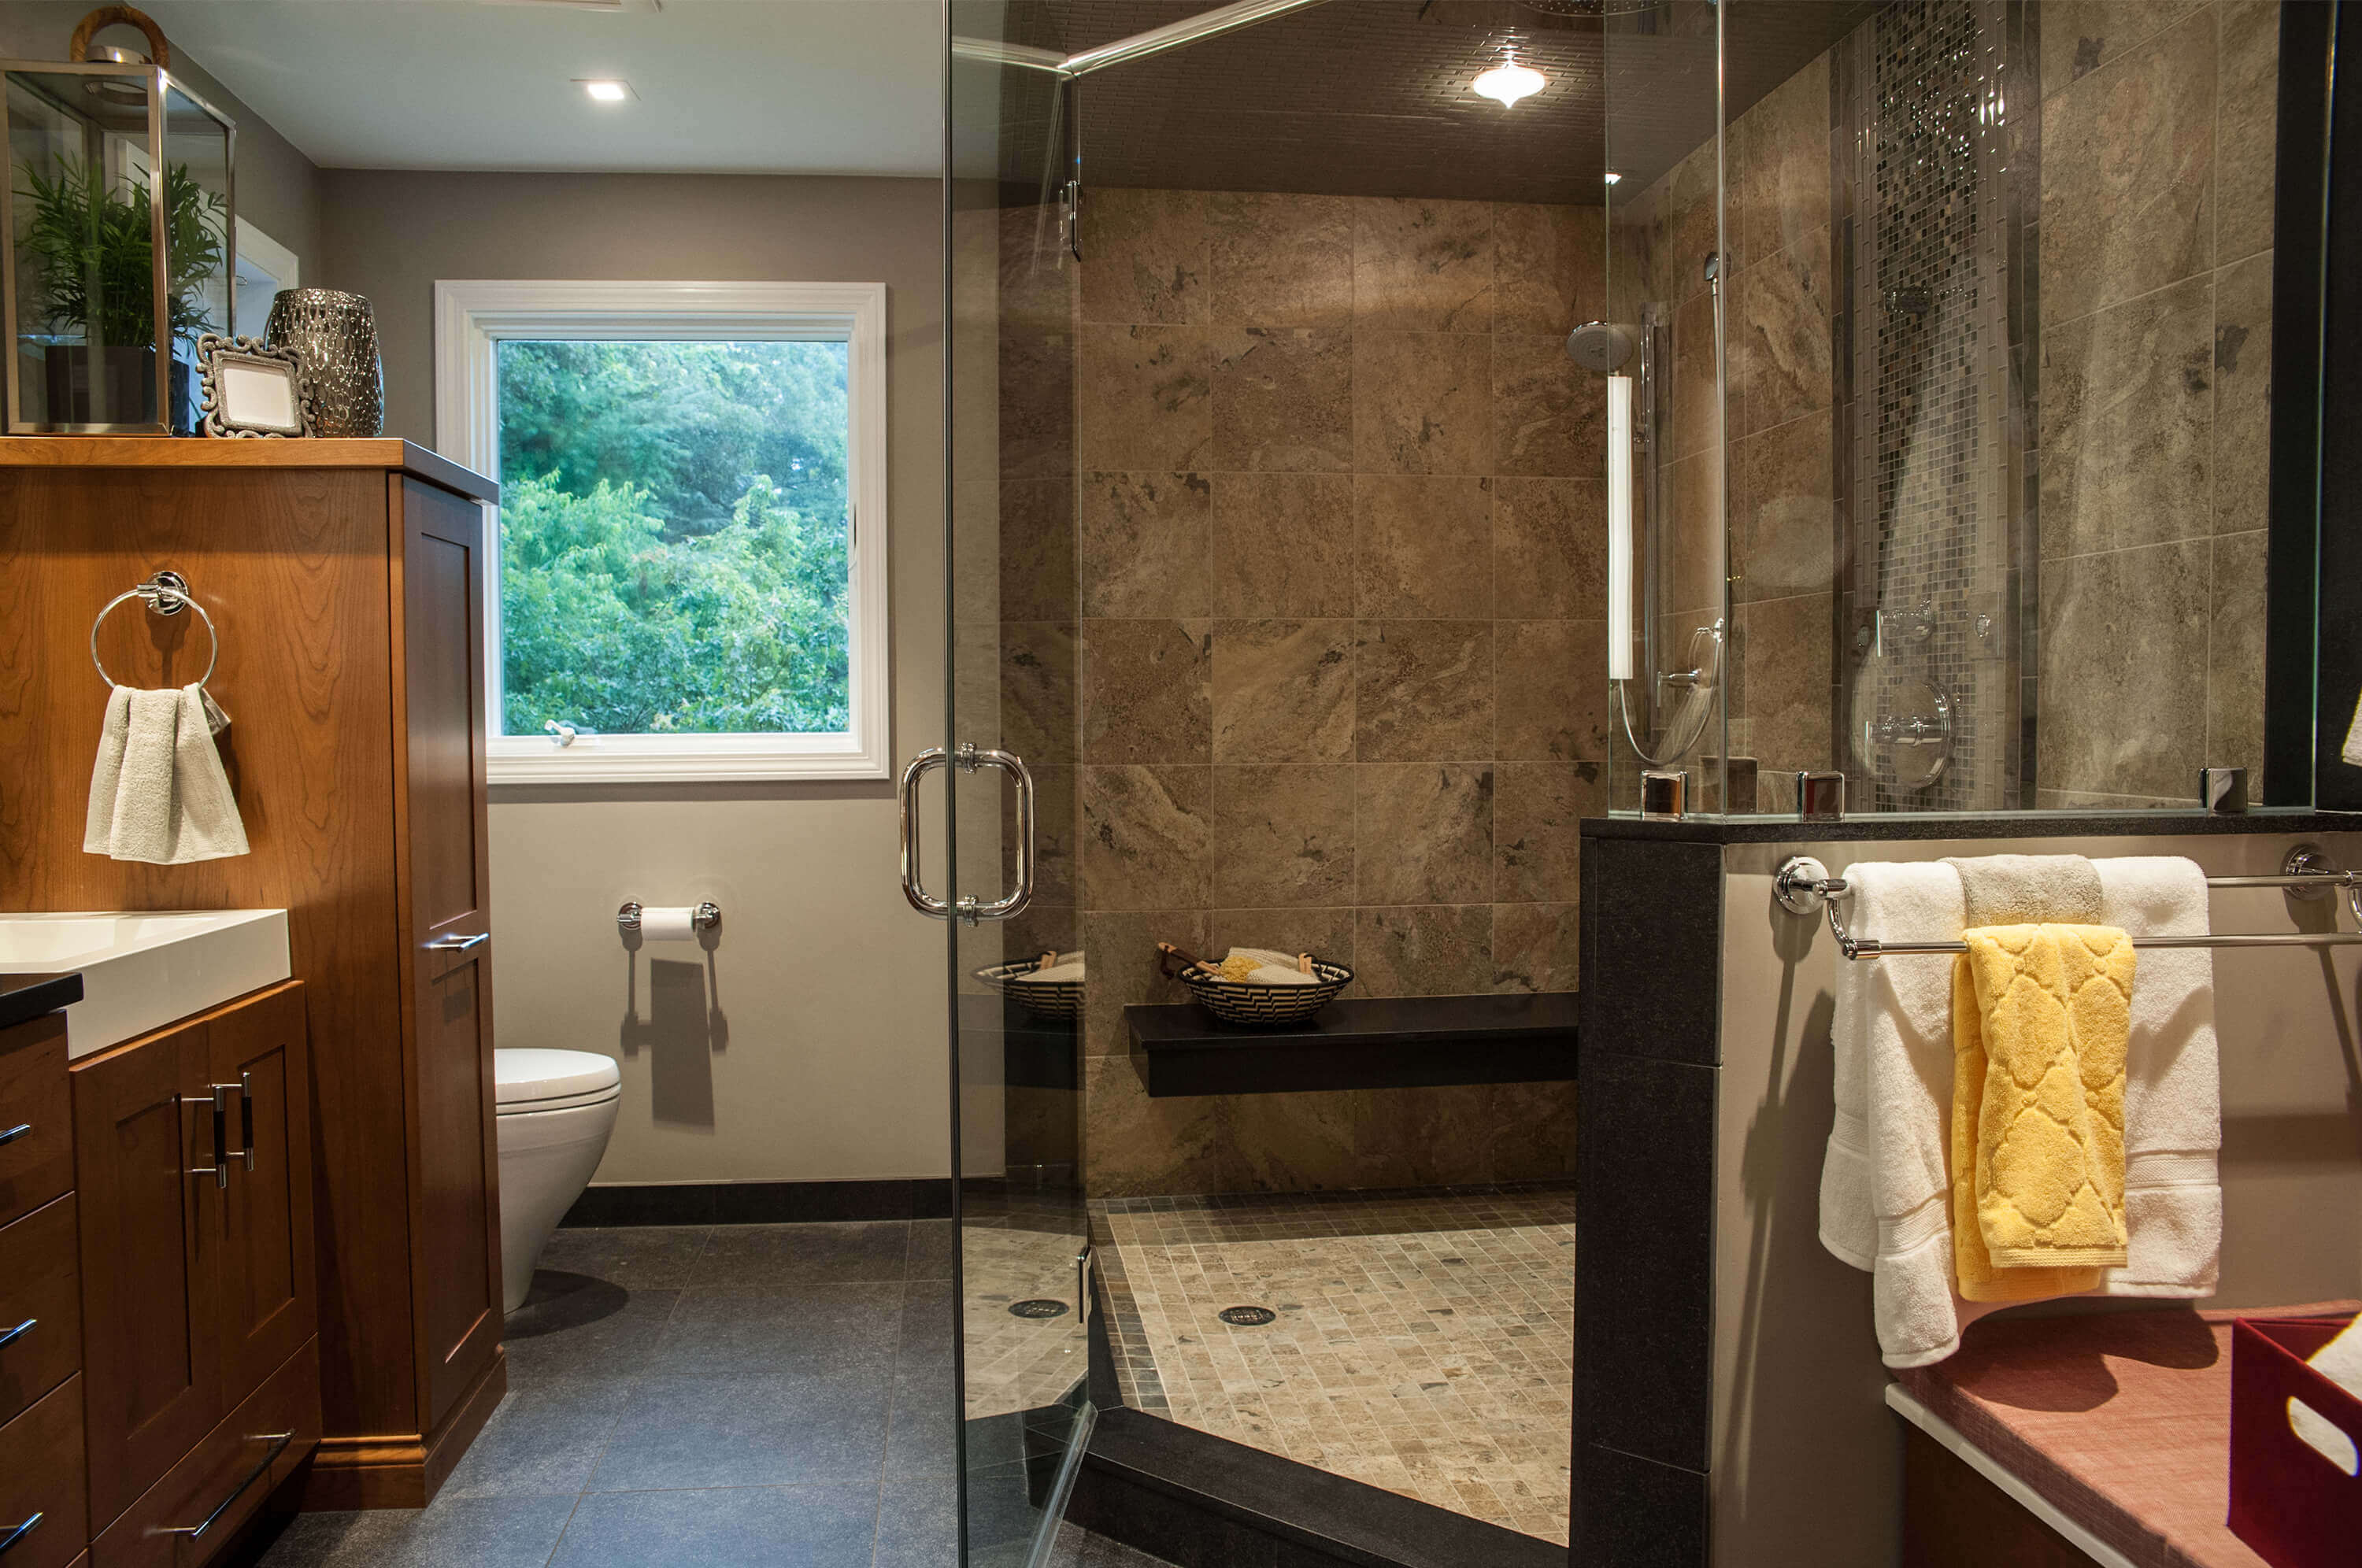 Bathroom Design And Build Center in Westborough Massachusetts